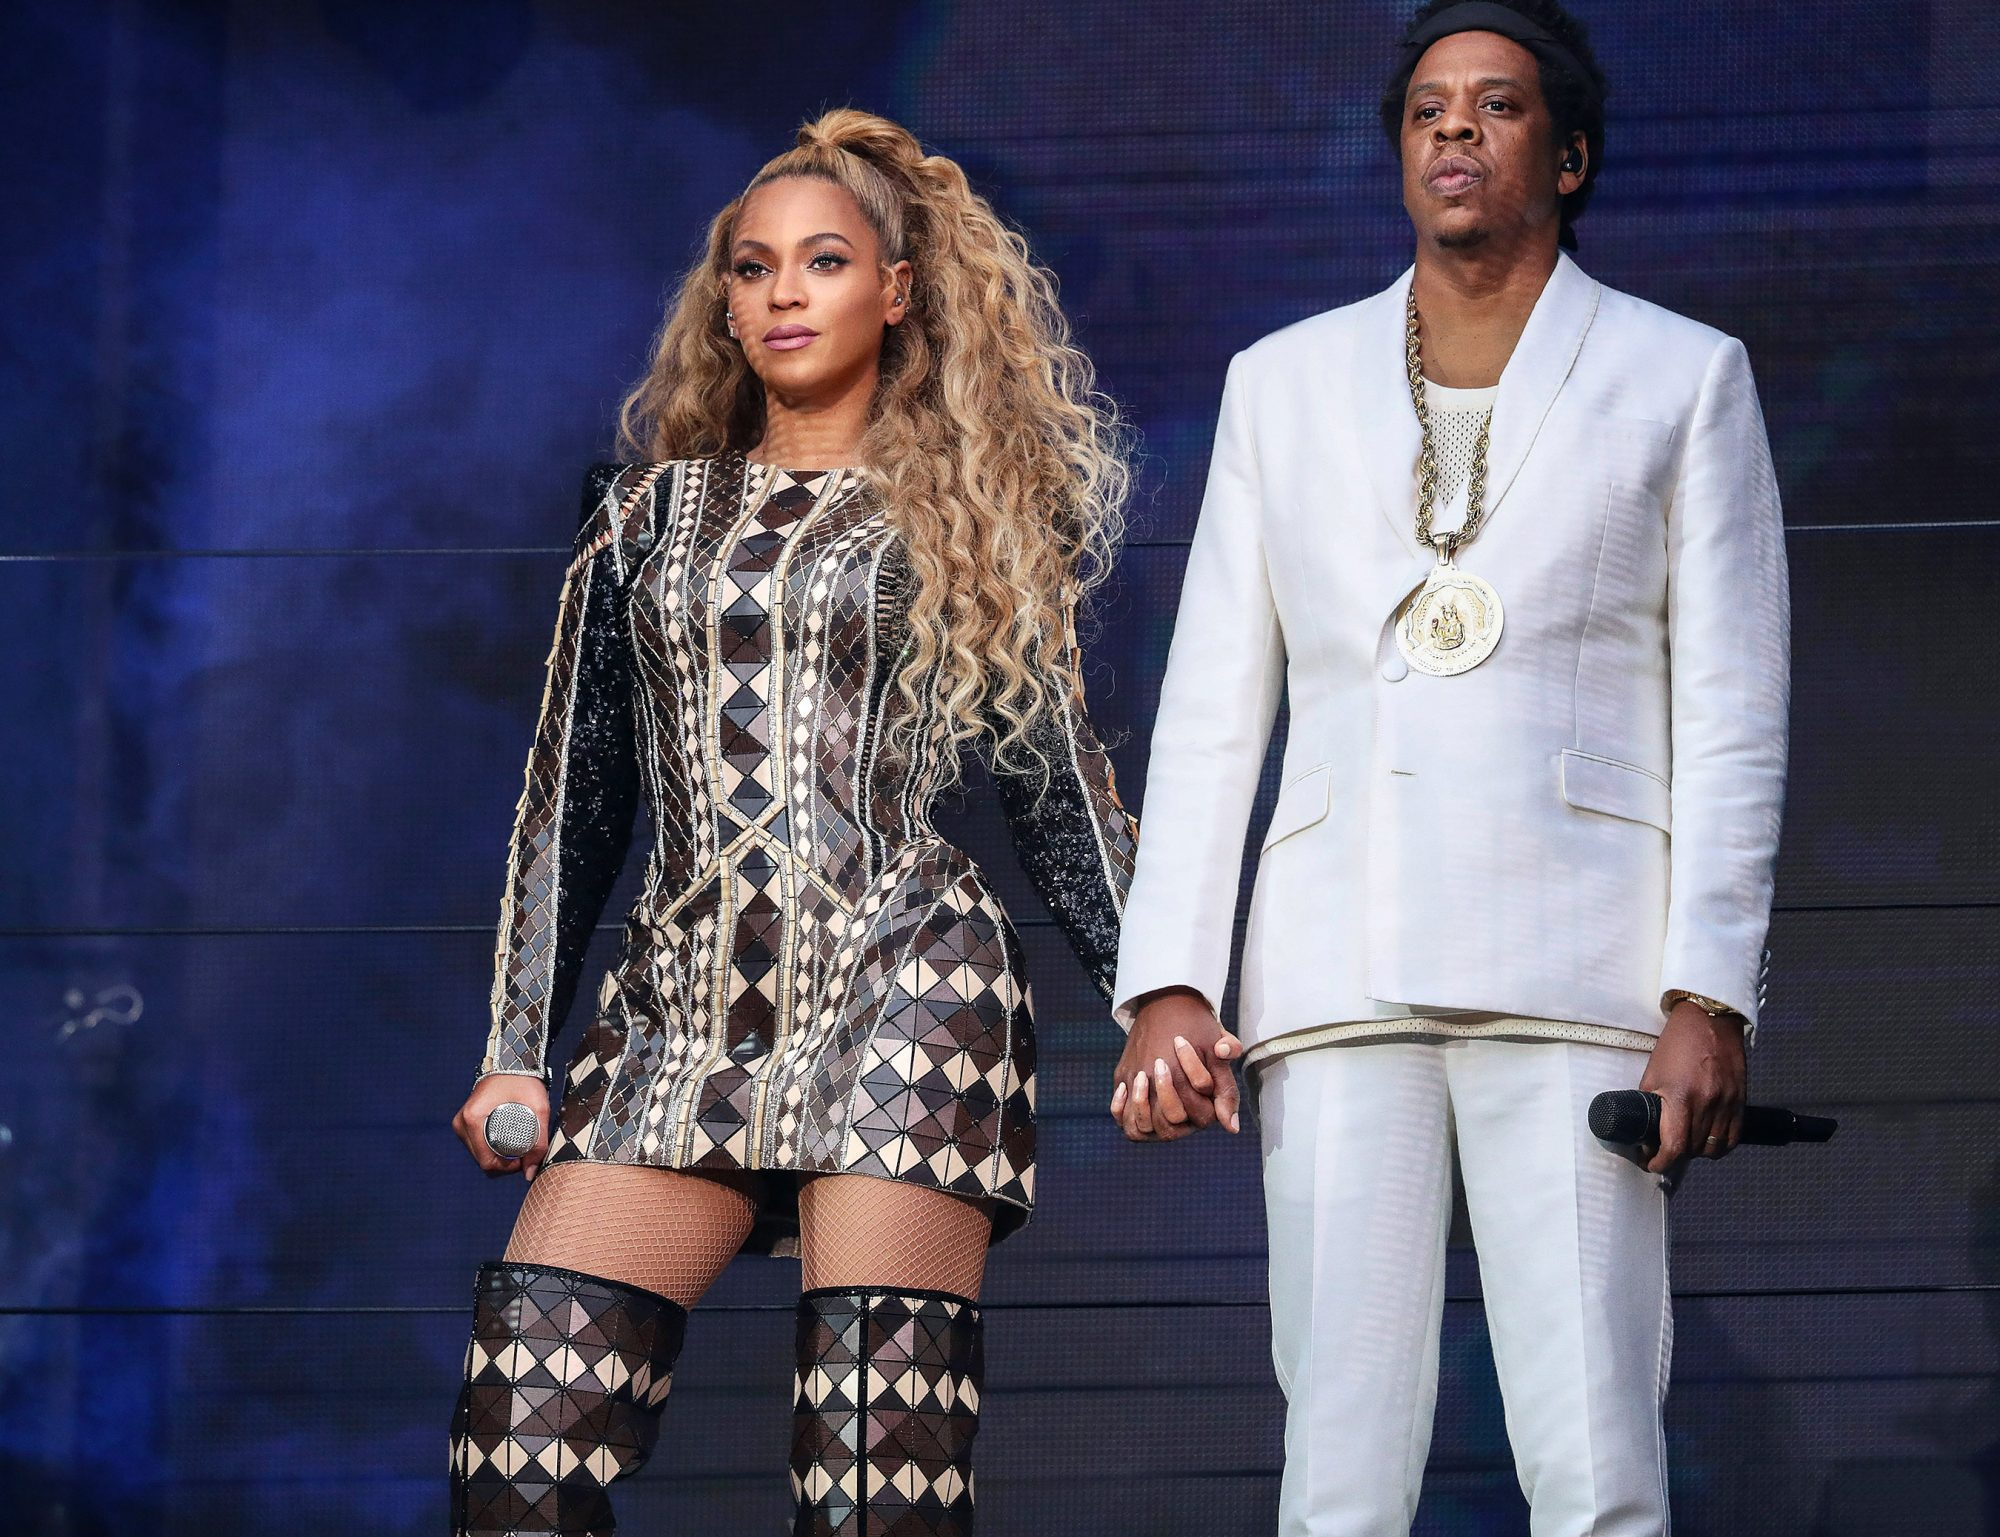 Beyonce and Jay-Z in concert, 'On The Run II Tour', Etihad Stadium, Manchester, UK - 13 Jun 2018